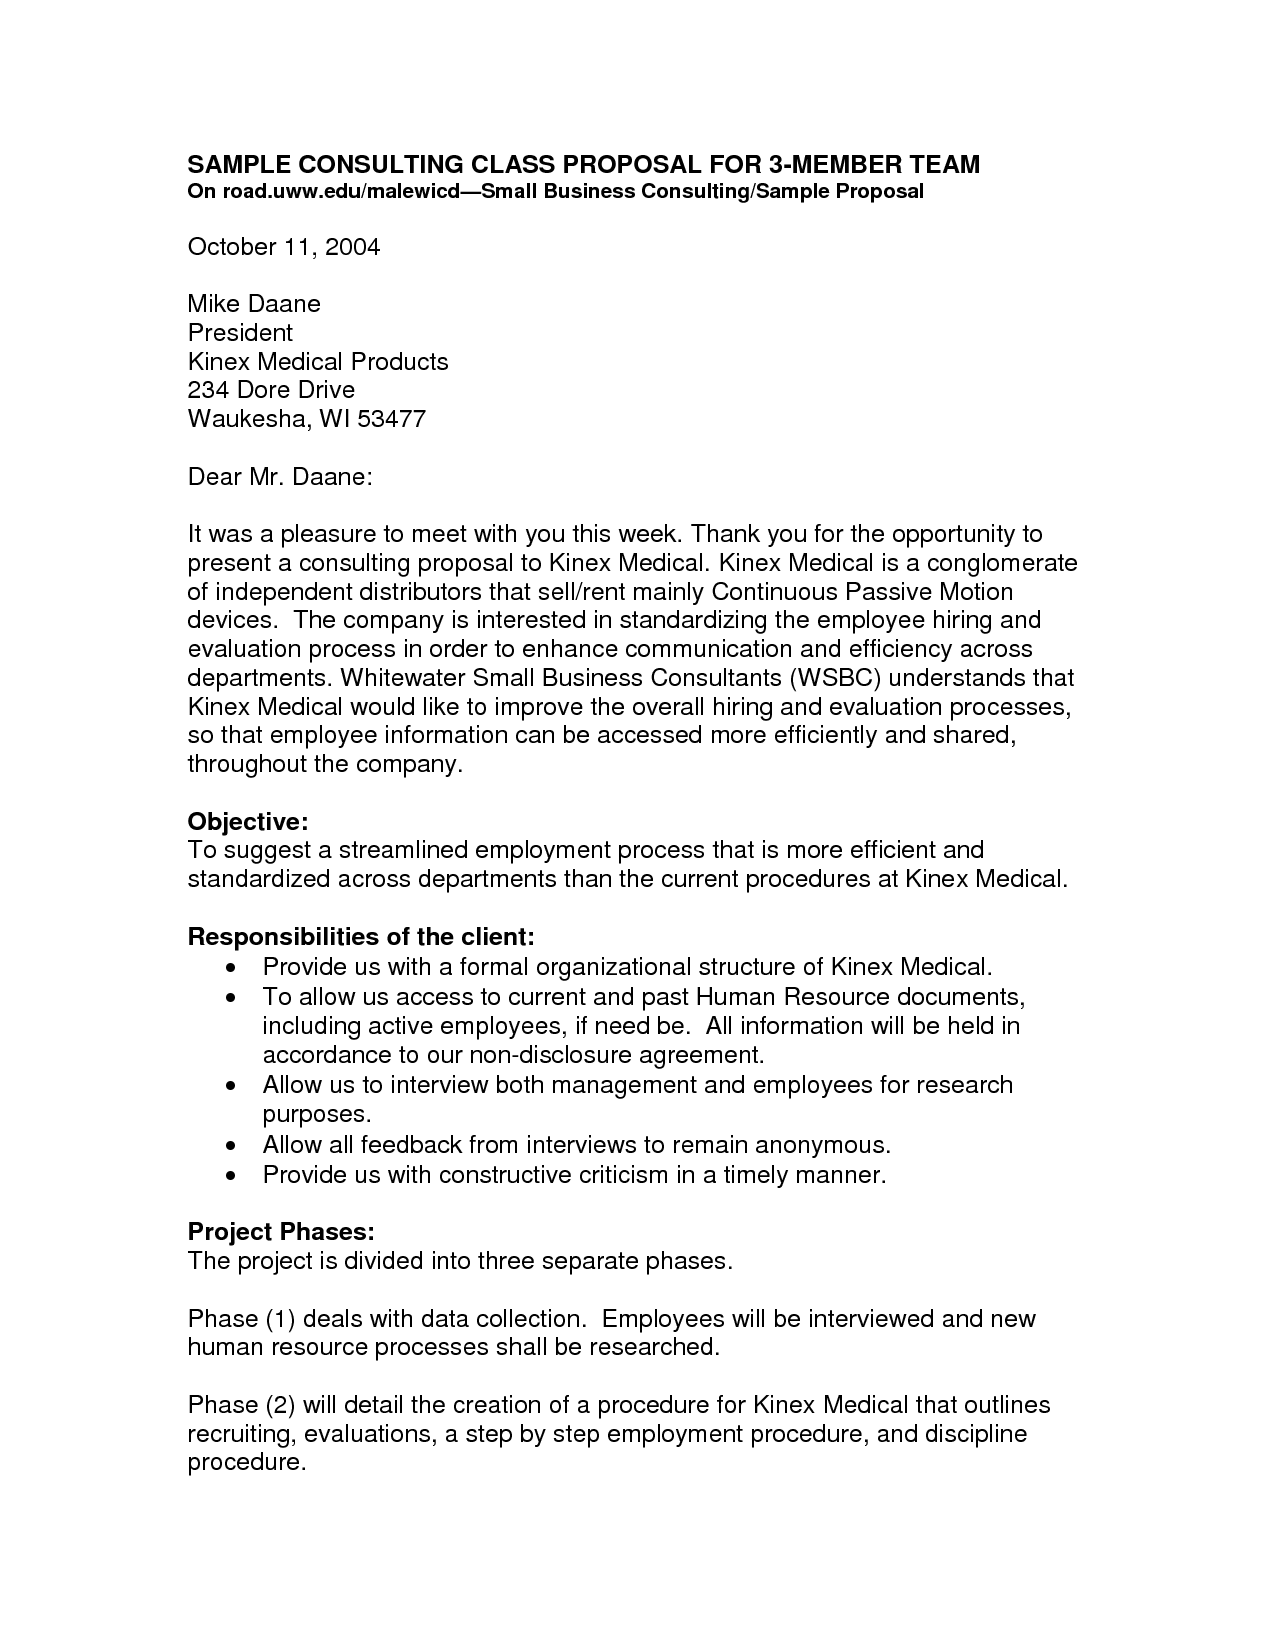 how to write an essay proposal writing a proposal argument essay ...